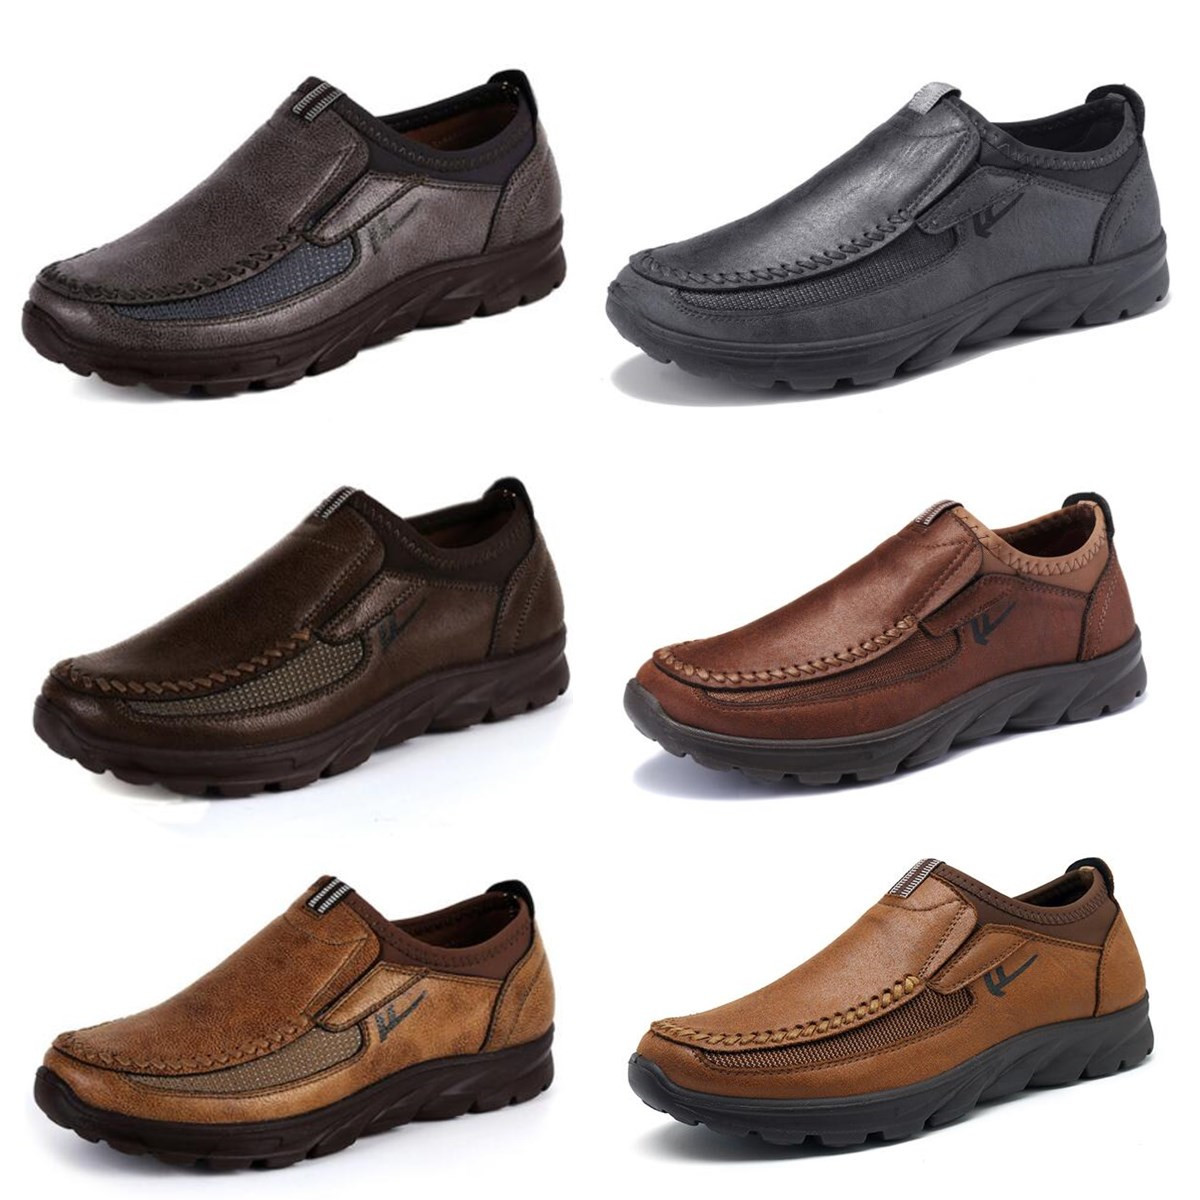 Men-039-s-Casual-Leather-Slip-On-Driving-Loafers-Antiskid-Moccasins-Breathable thumbnail 3